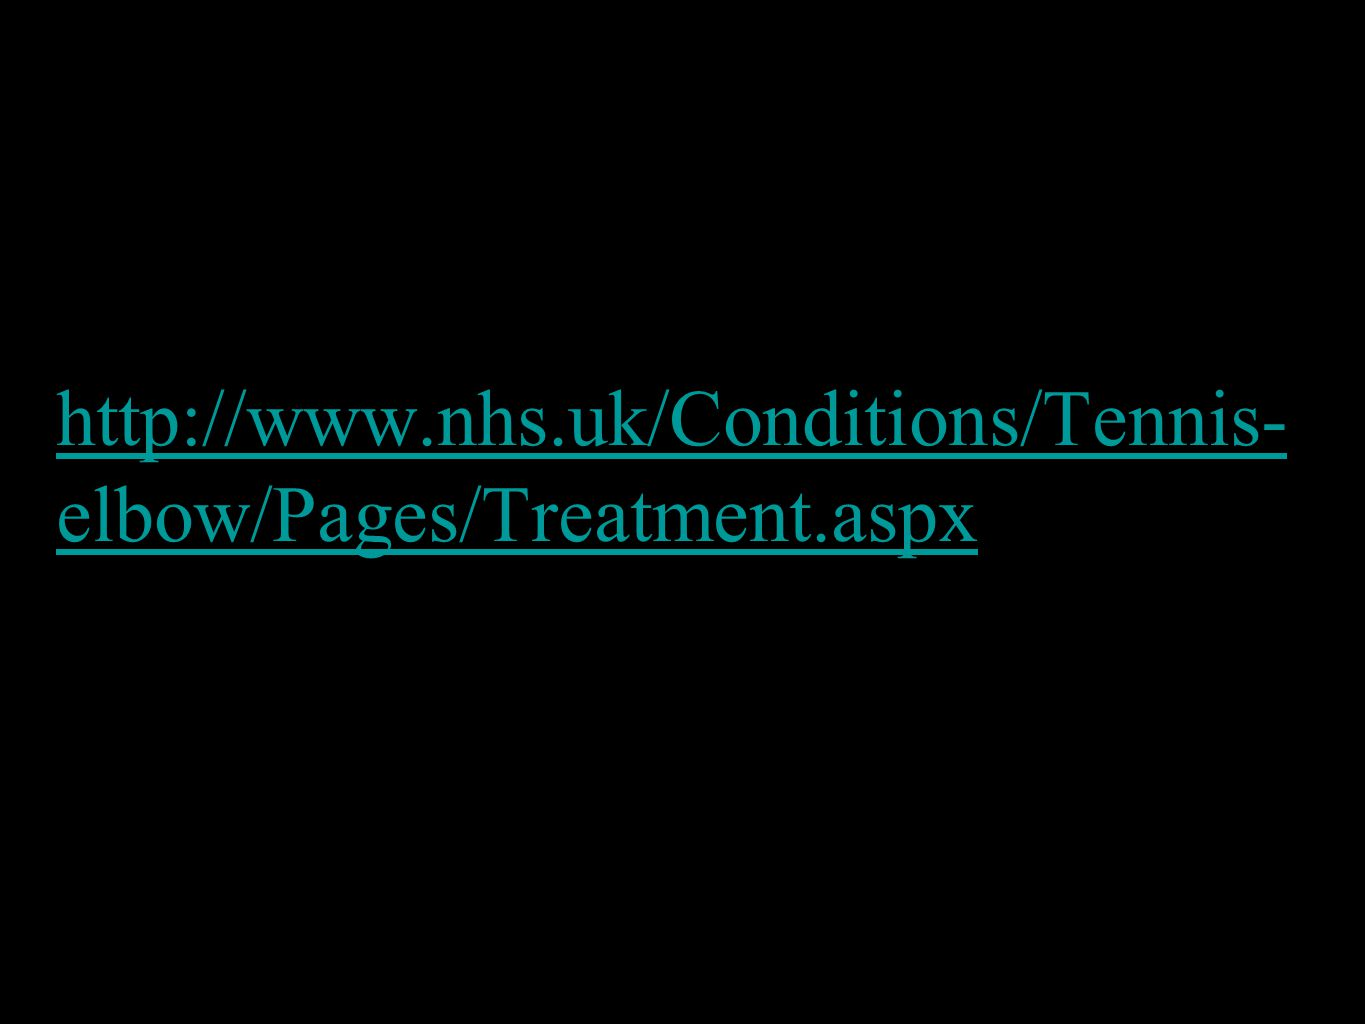 http://www.nhs.uk/Conditions/Tennis- elbow/Pages/Treatment.aspx